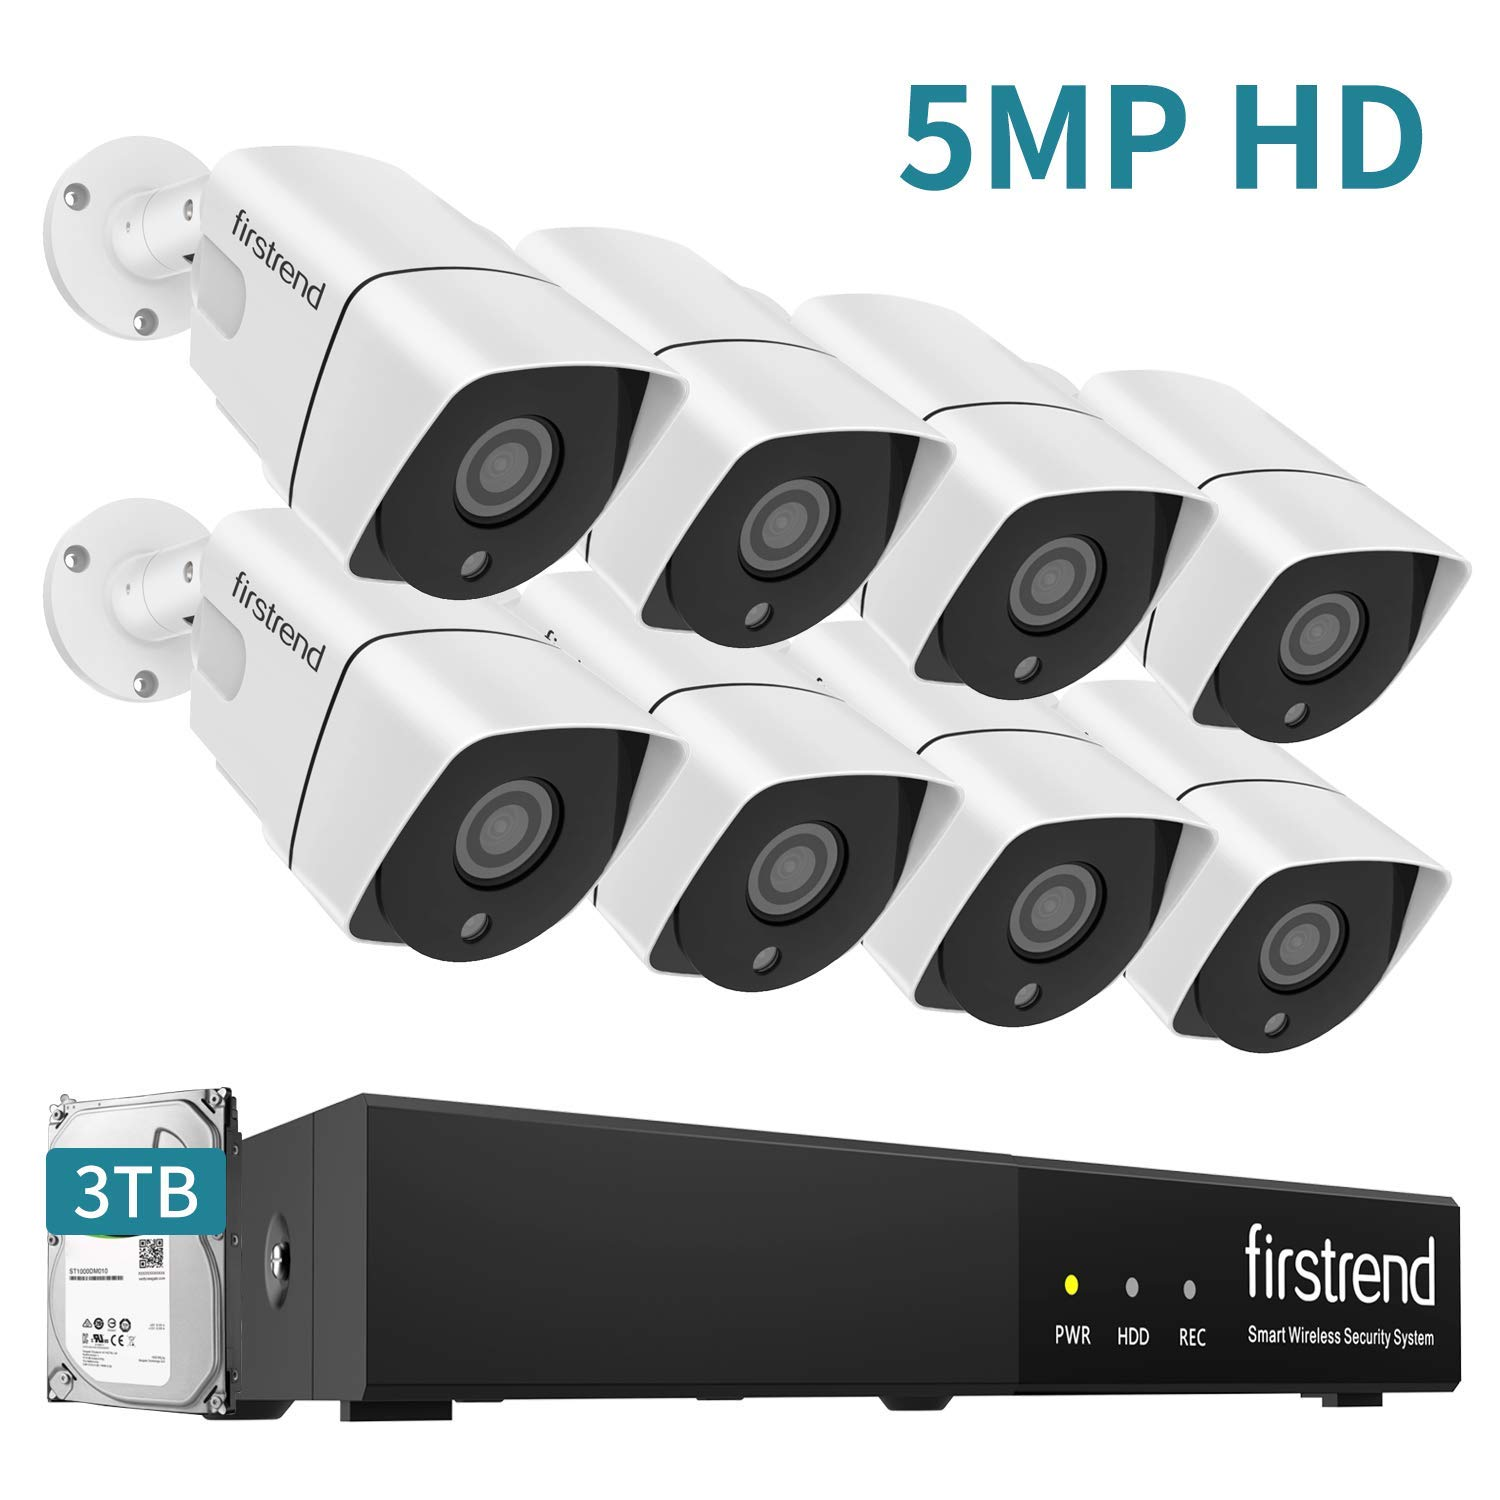 PoE Security Camera System 5MP 8CH NVR with 3TB HDD and 8PCS 5MP P2P Indoor Outdoor Video Camera System 65FT Night Vision Free APP